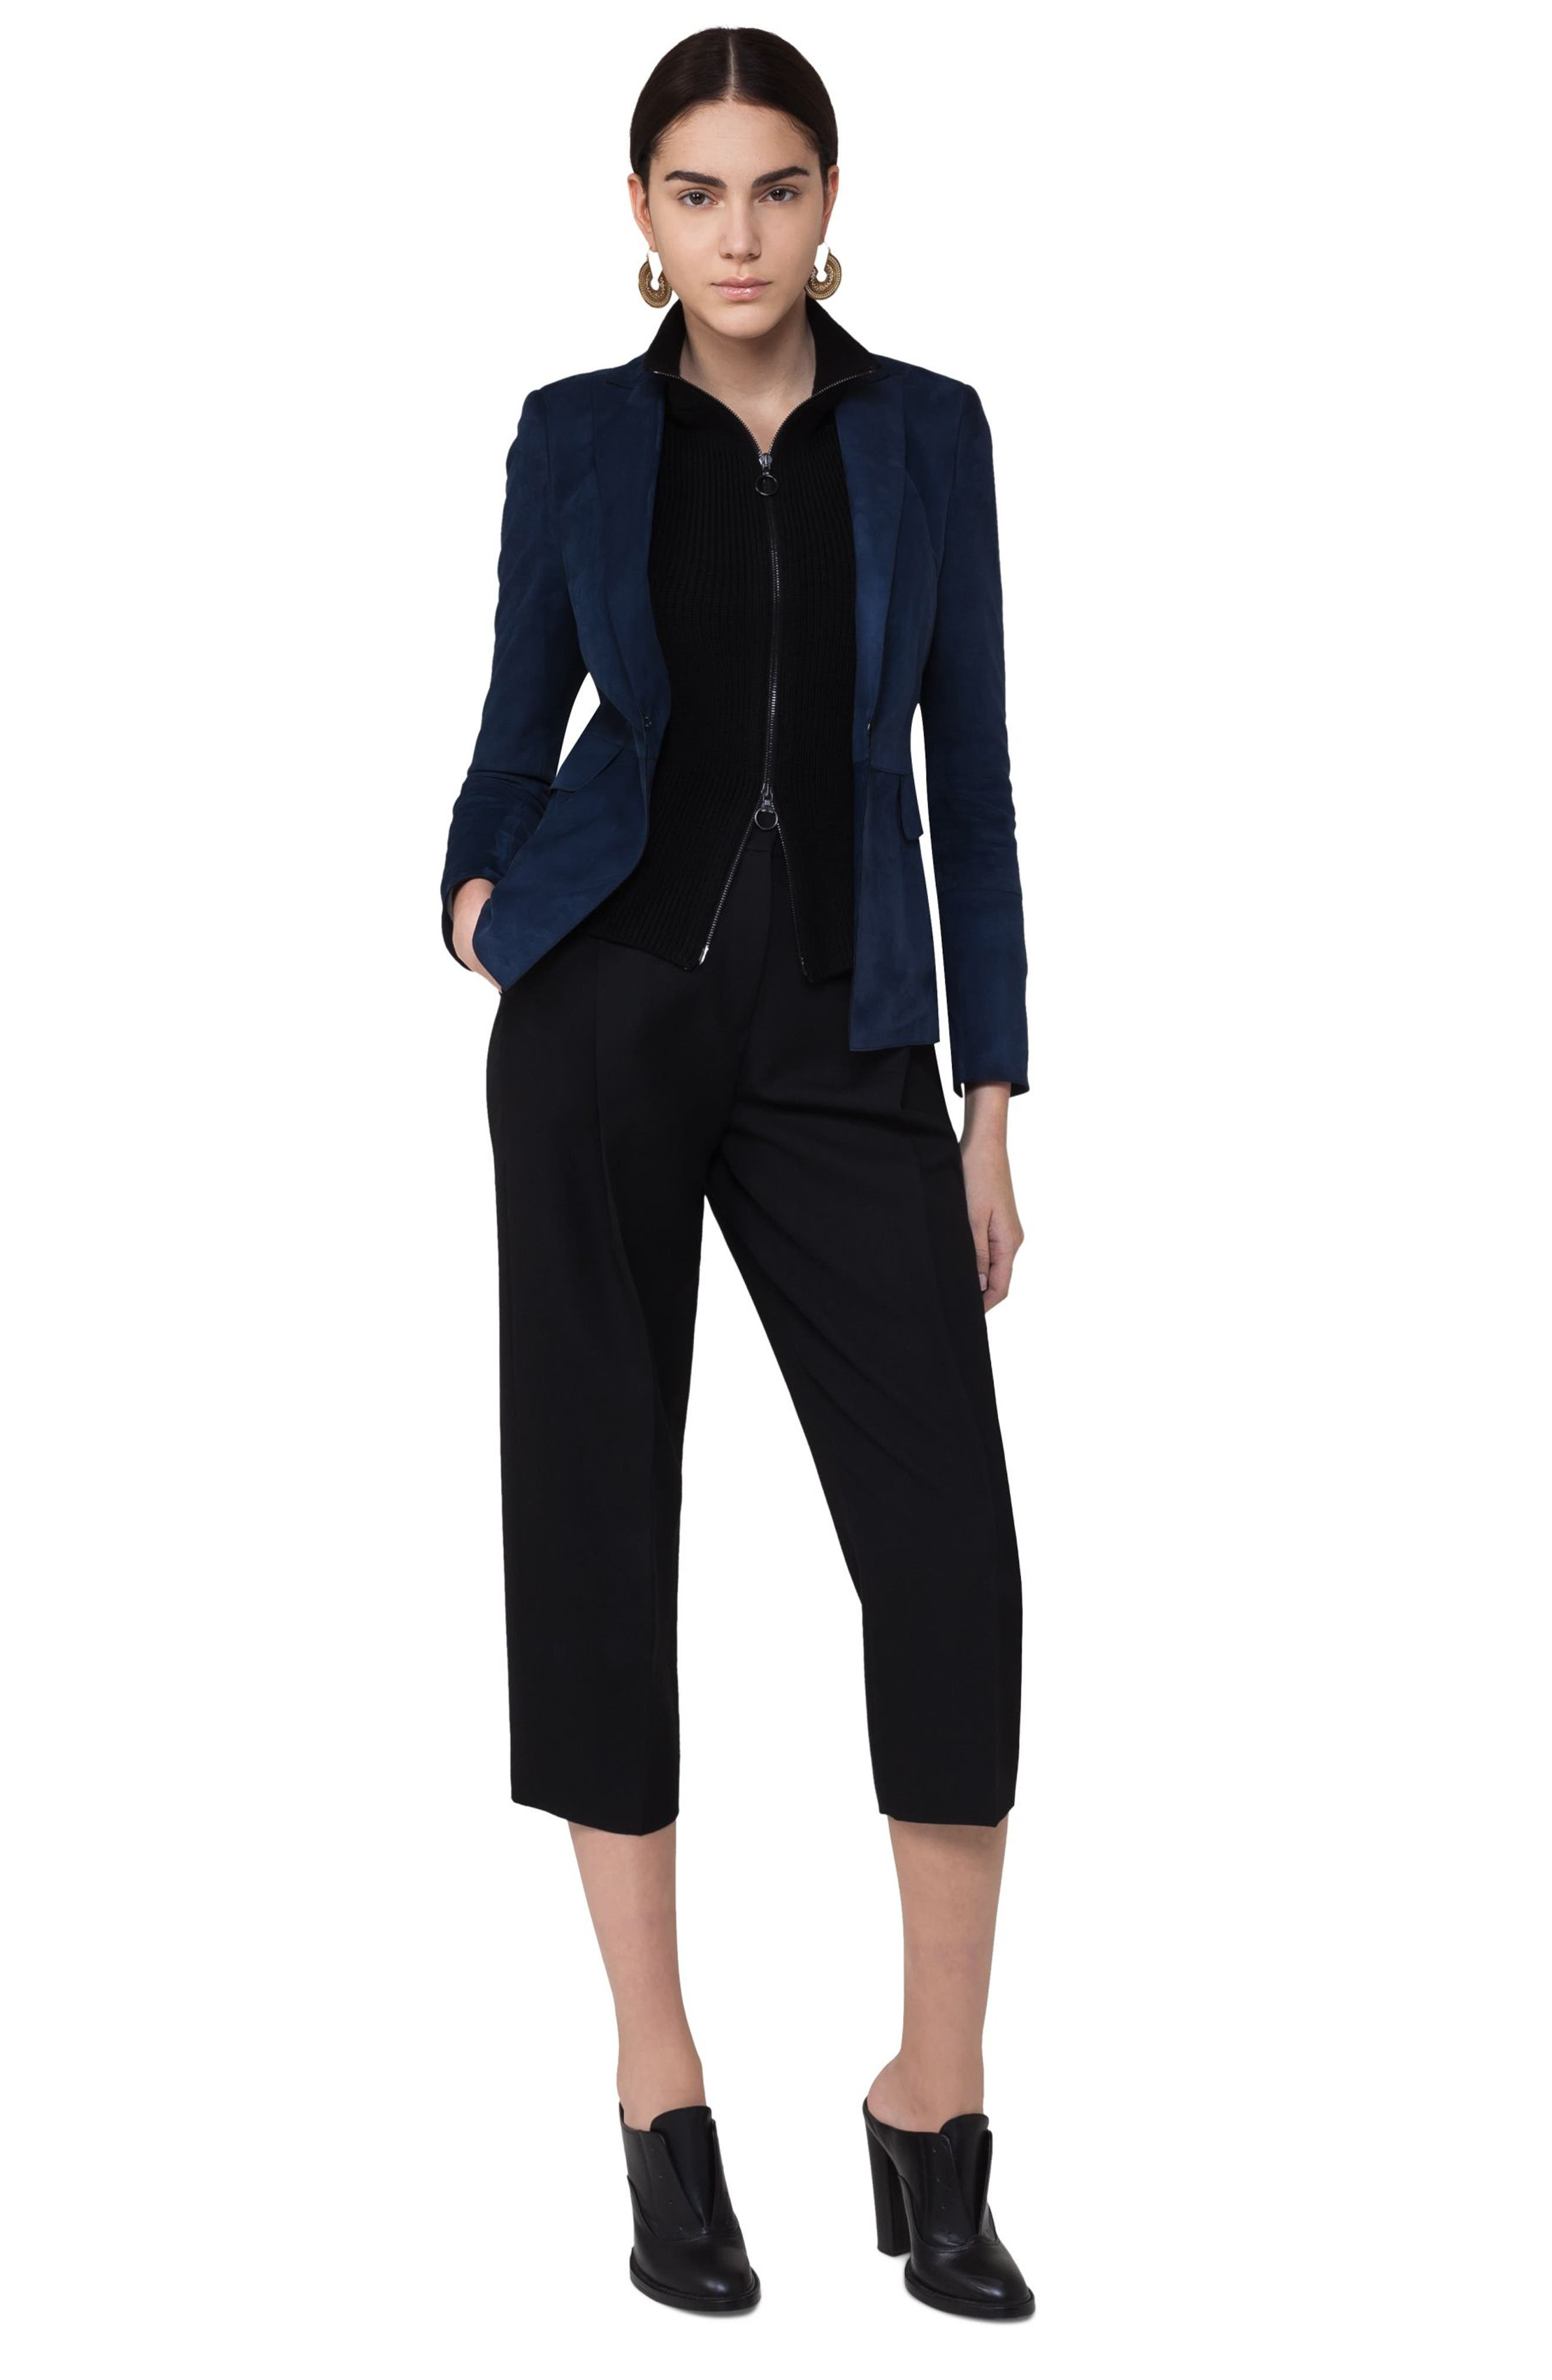 Suede Blazer with Removable Knit Insert,                             Alternate thumbnail 5, color,                             Solid Blue Denim